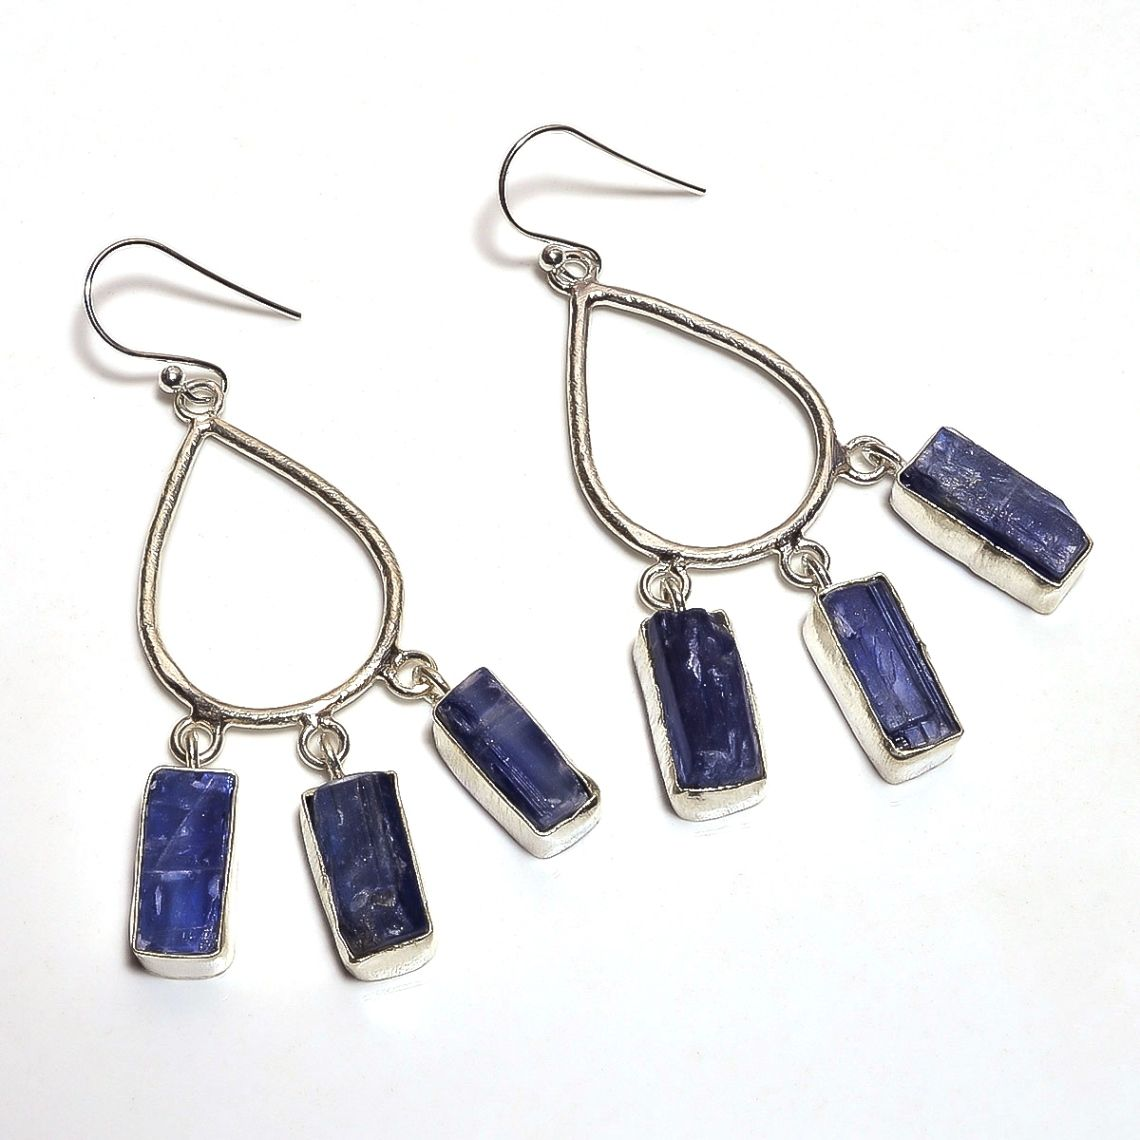 Kyanite Raw Gemstone 925 Sterling Silver Earrings